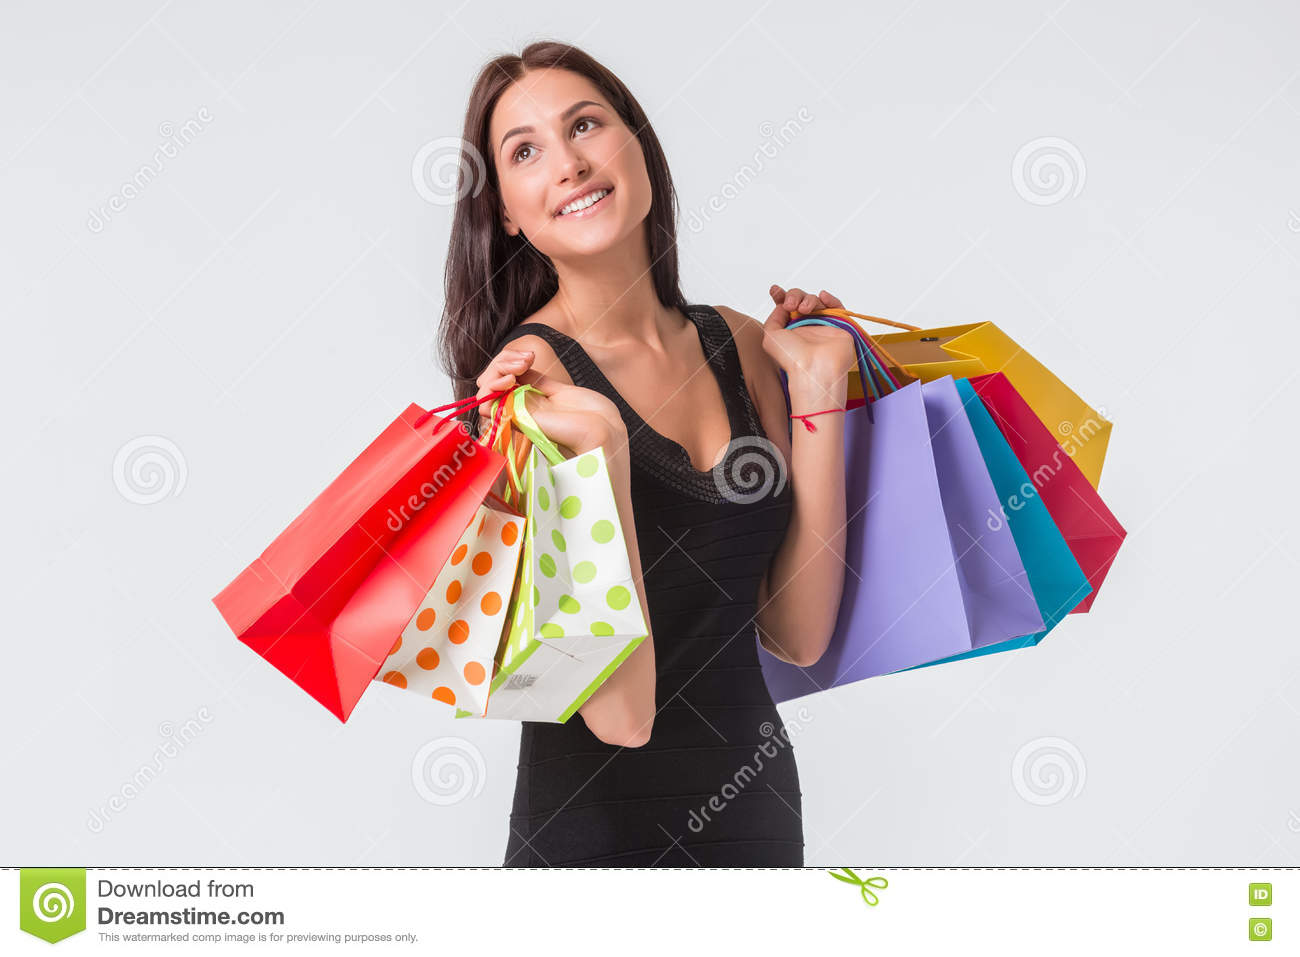 Beautiful Woman With A Lot Of Shopping Bags Stock Photo - Image ...